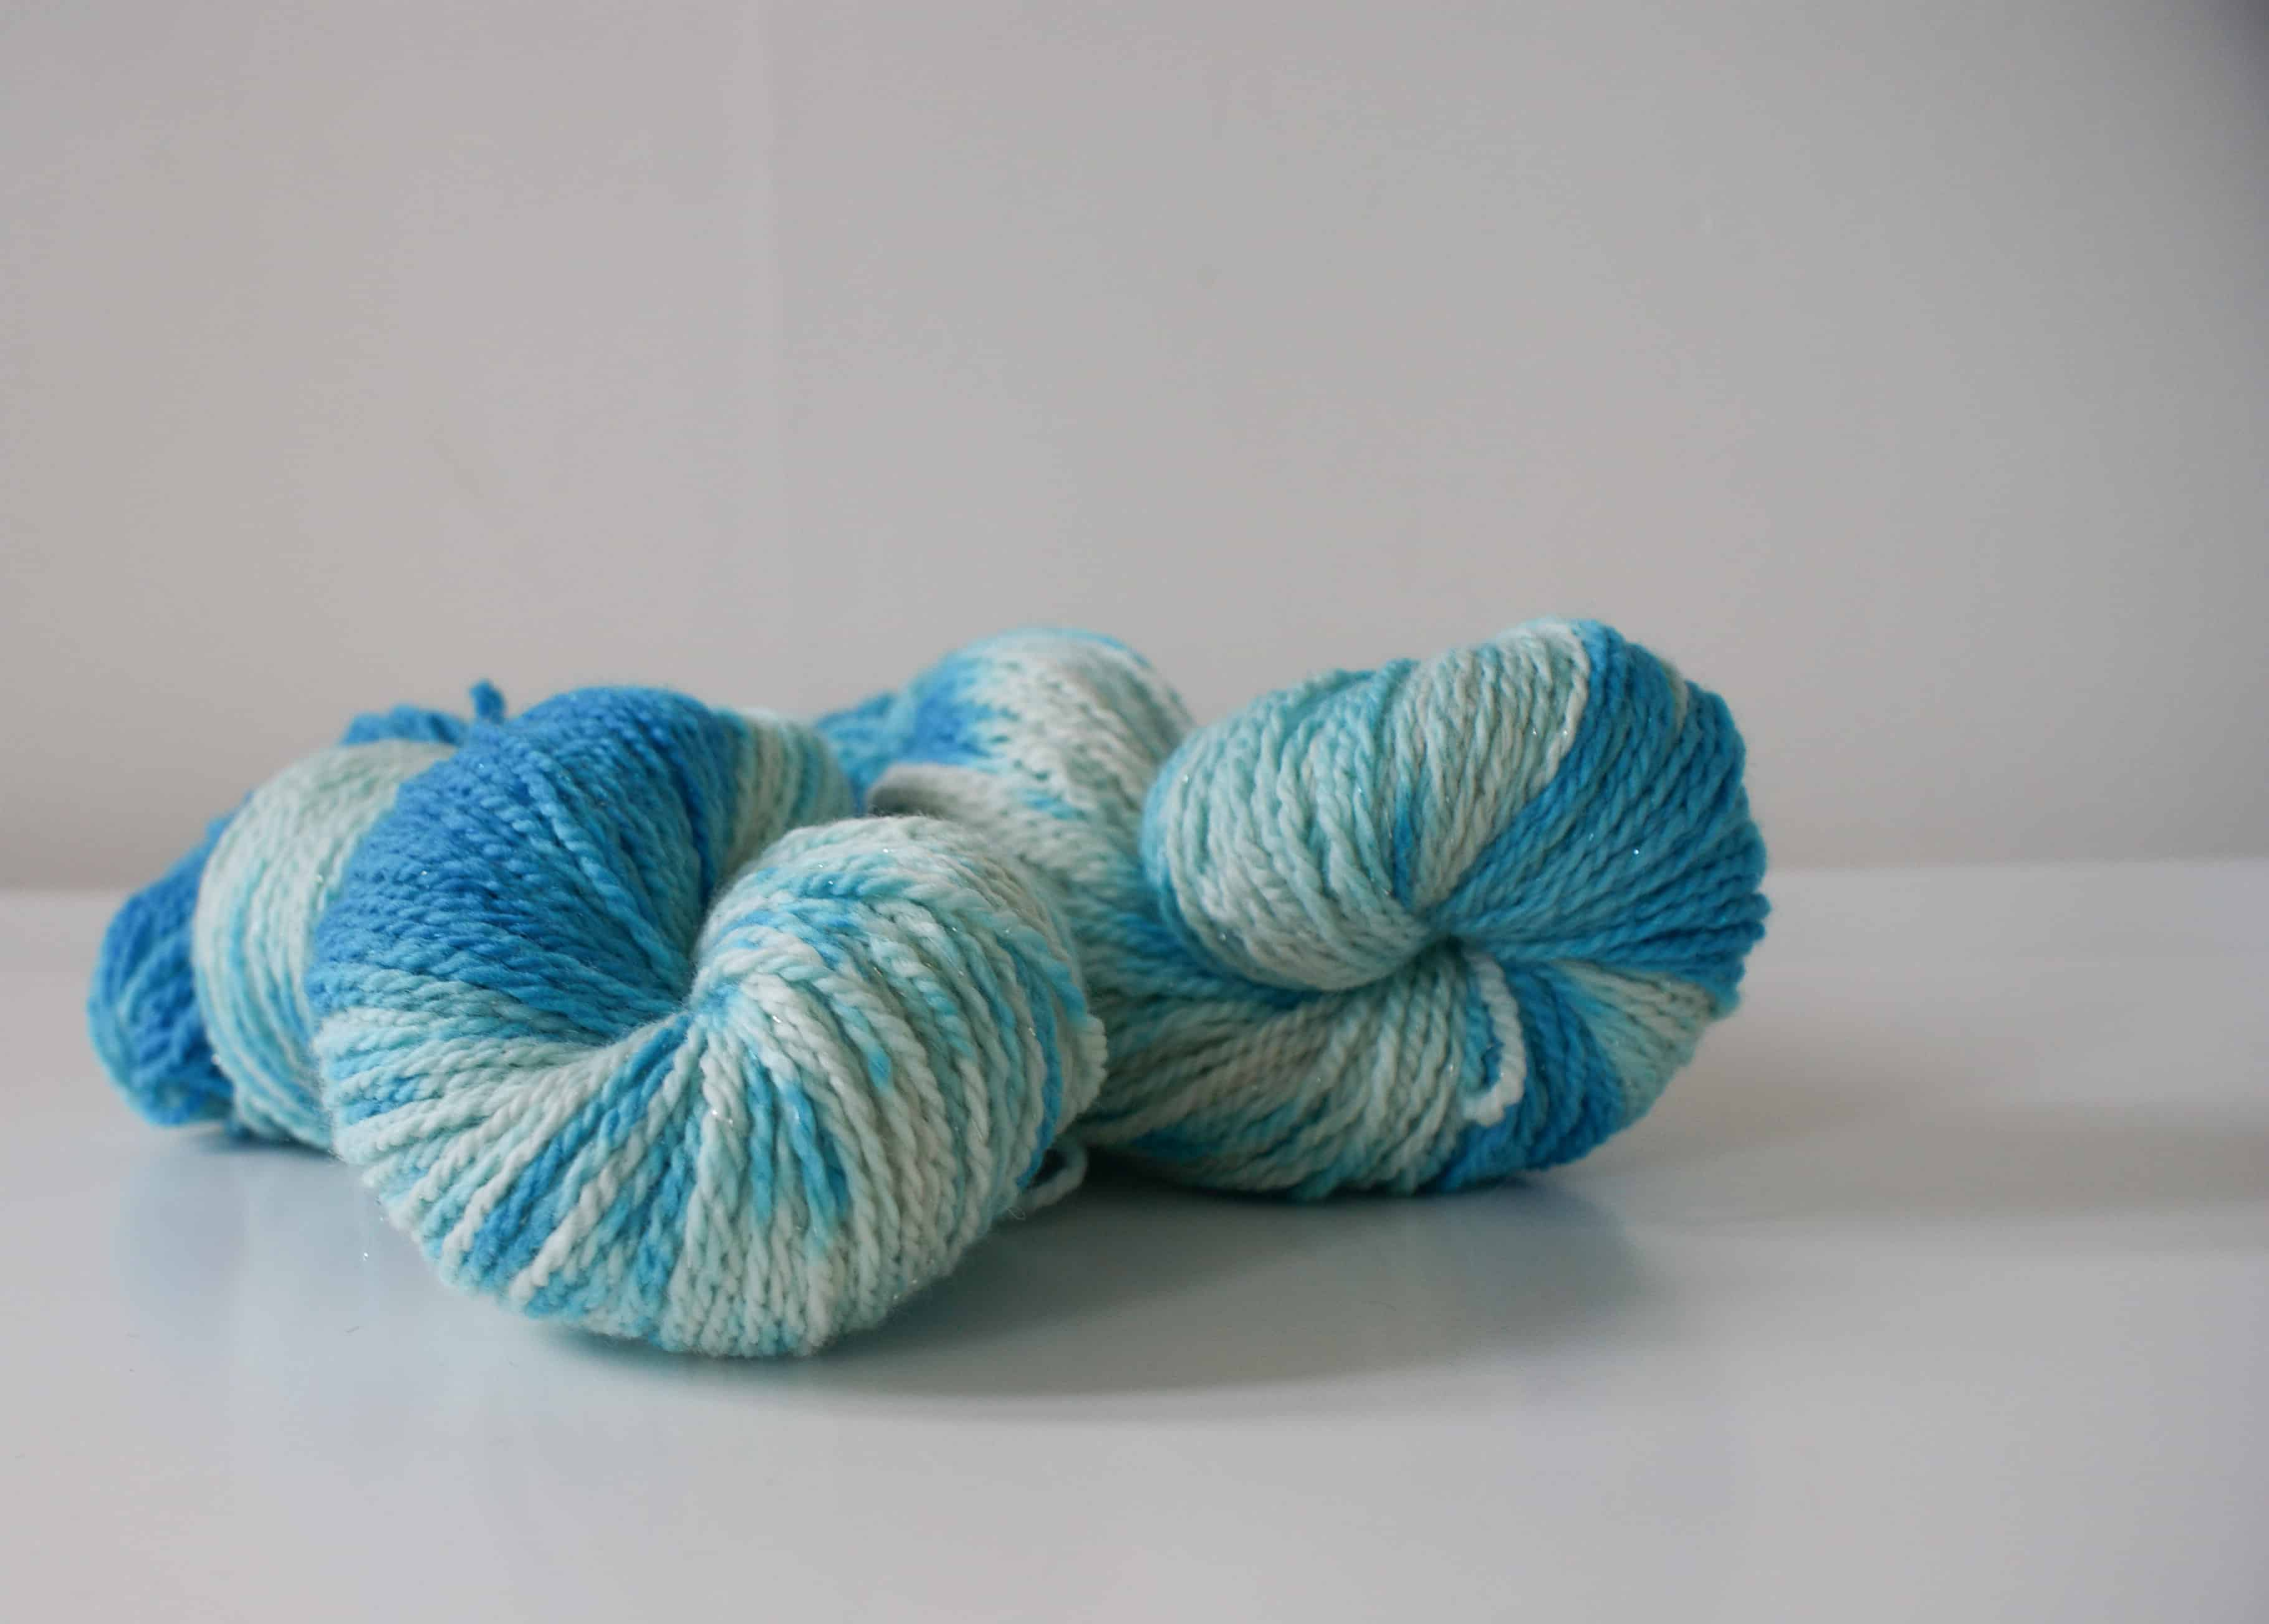 two hanks of blue and white hand dyed yarn